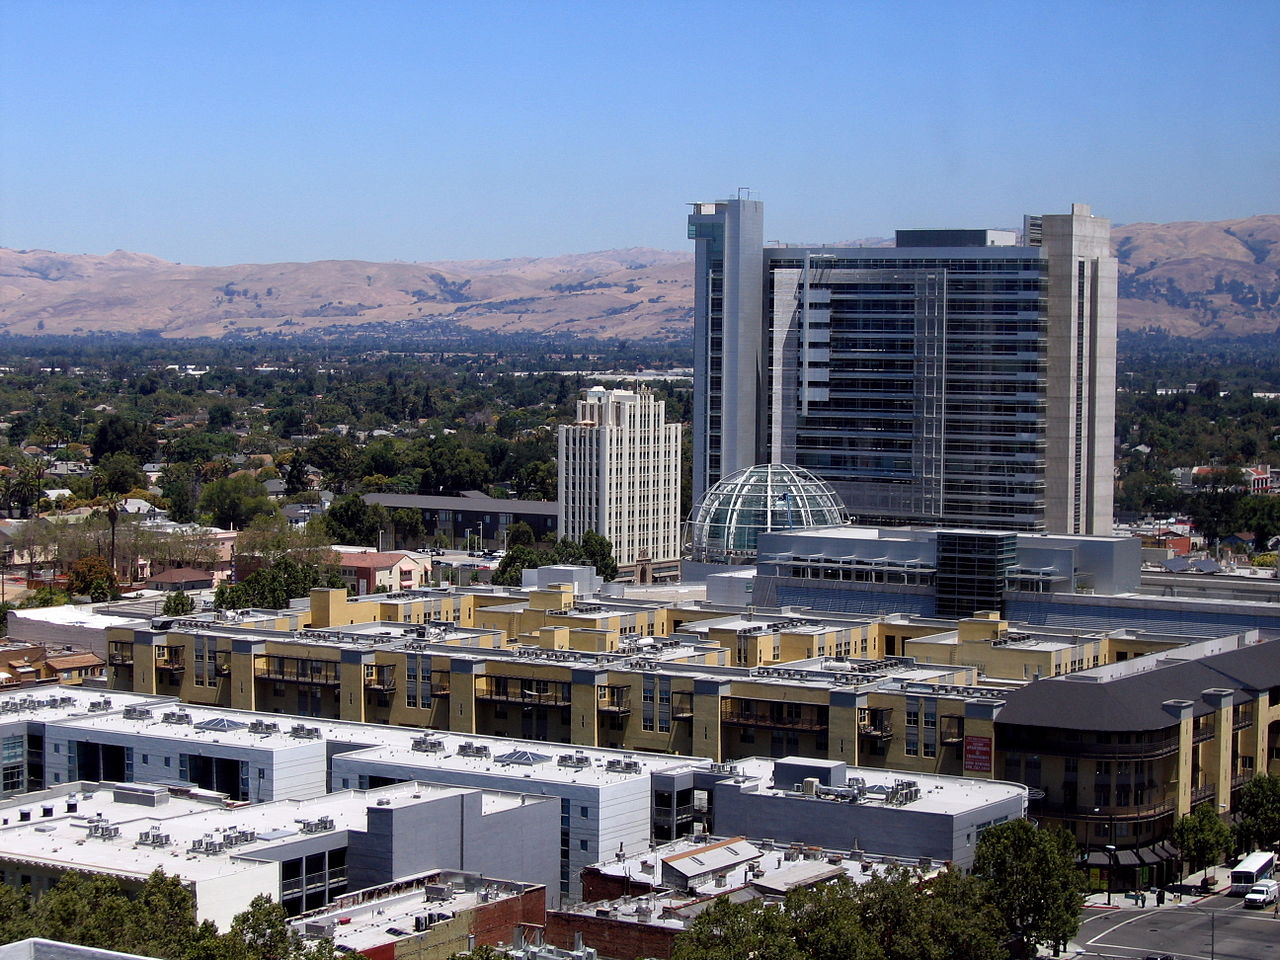 San Jose, SF among lowest vacancy rates in the U.S., says study